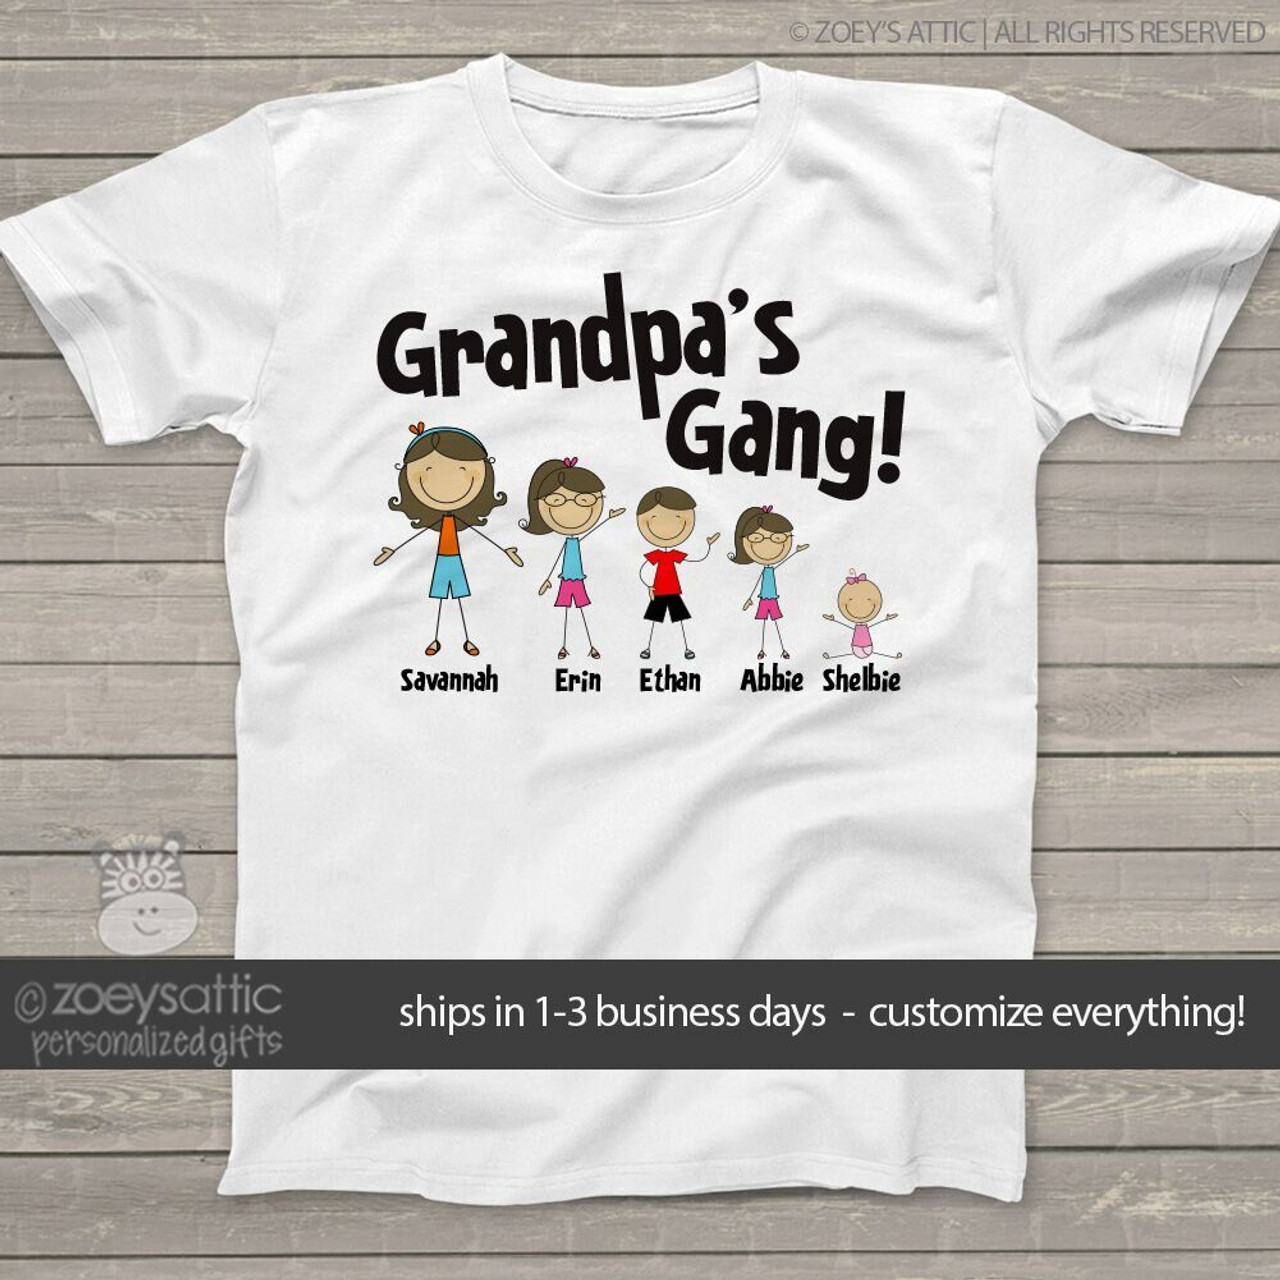 73a79d6d fathers day shirt, stick figure family and grandpa men's t-shirt